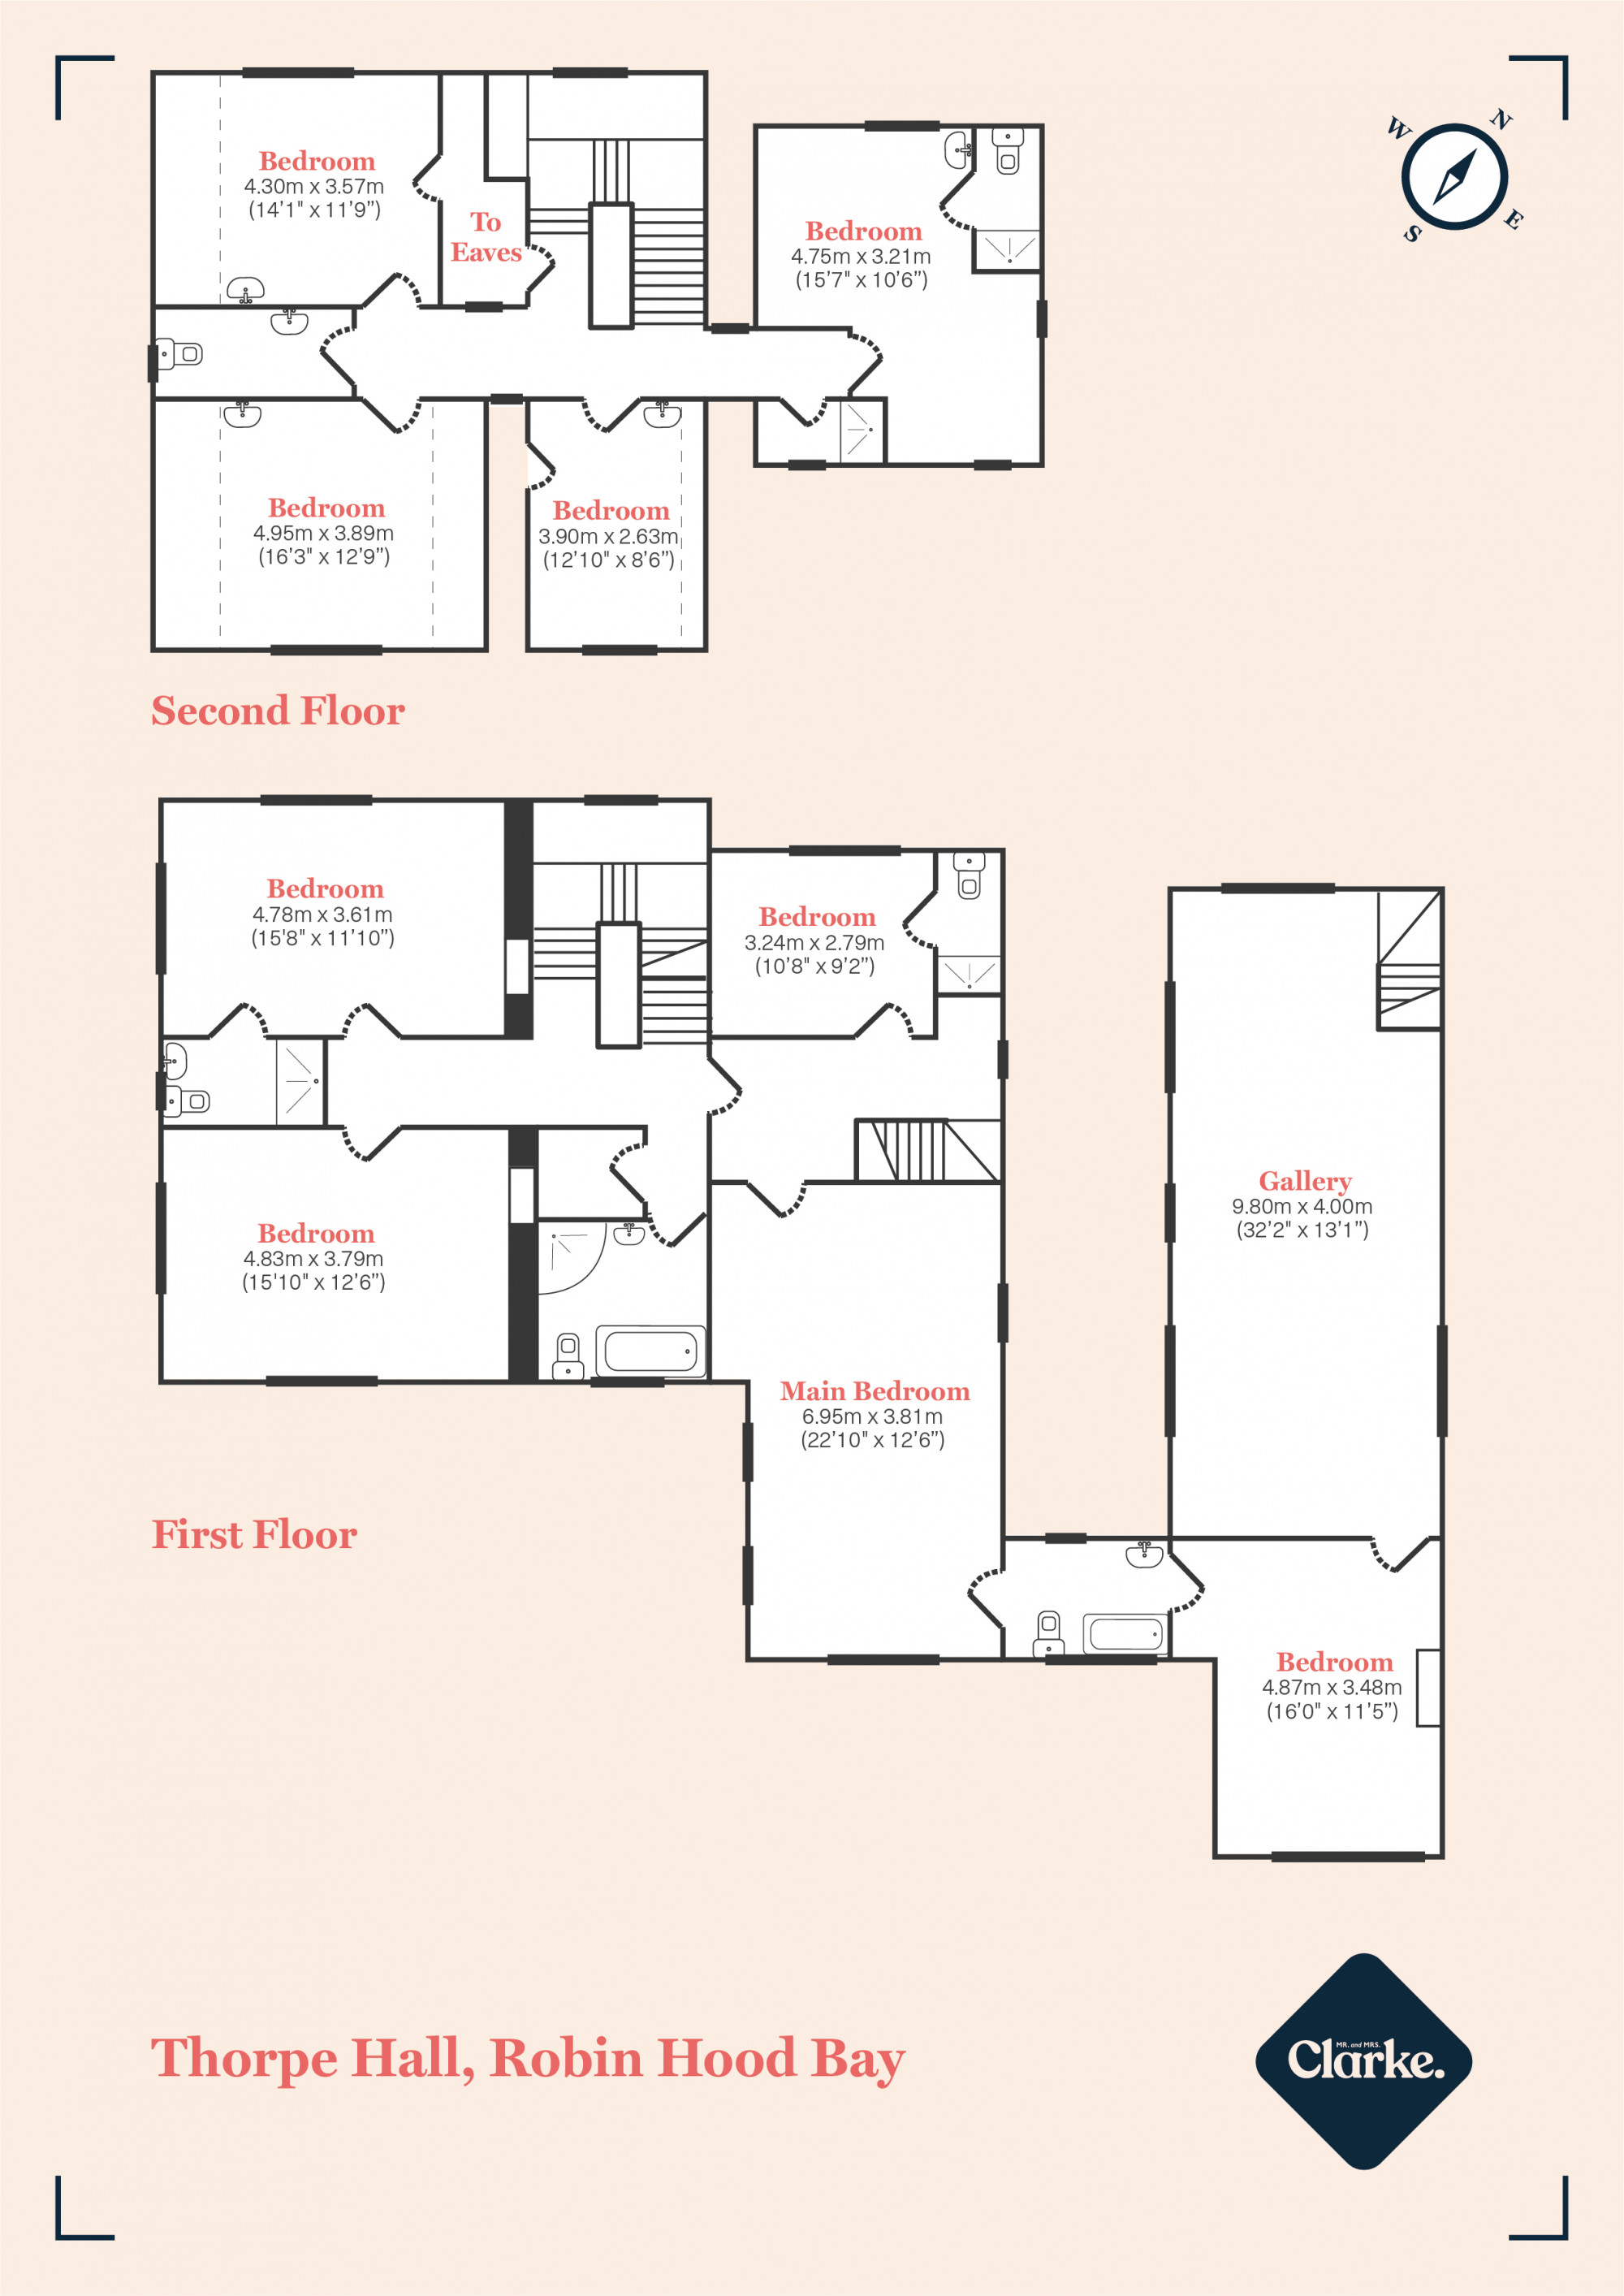 Thorpe Hall, Robin Hoods Bay. Floorplan.